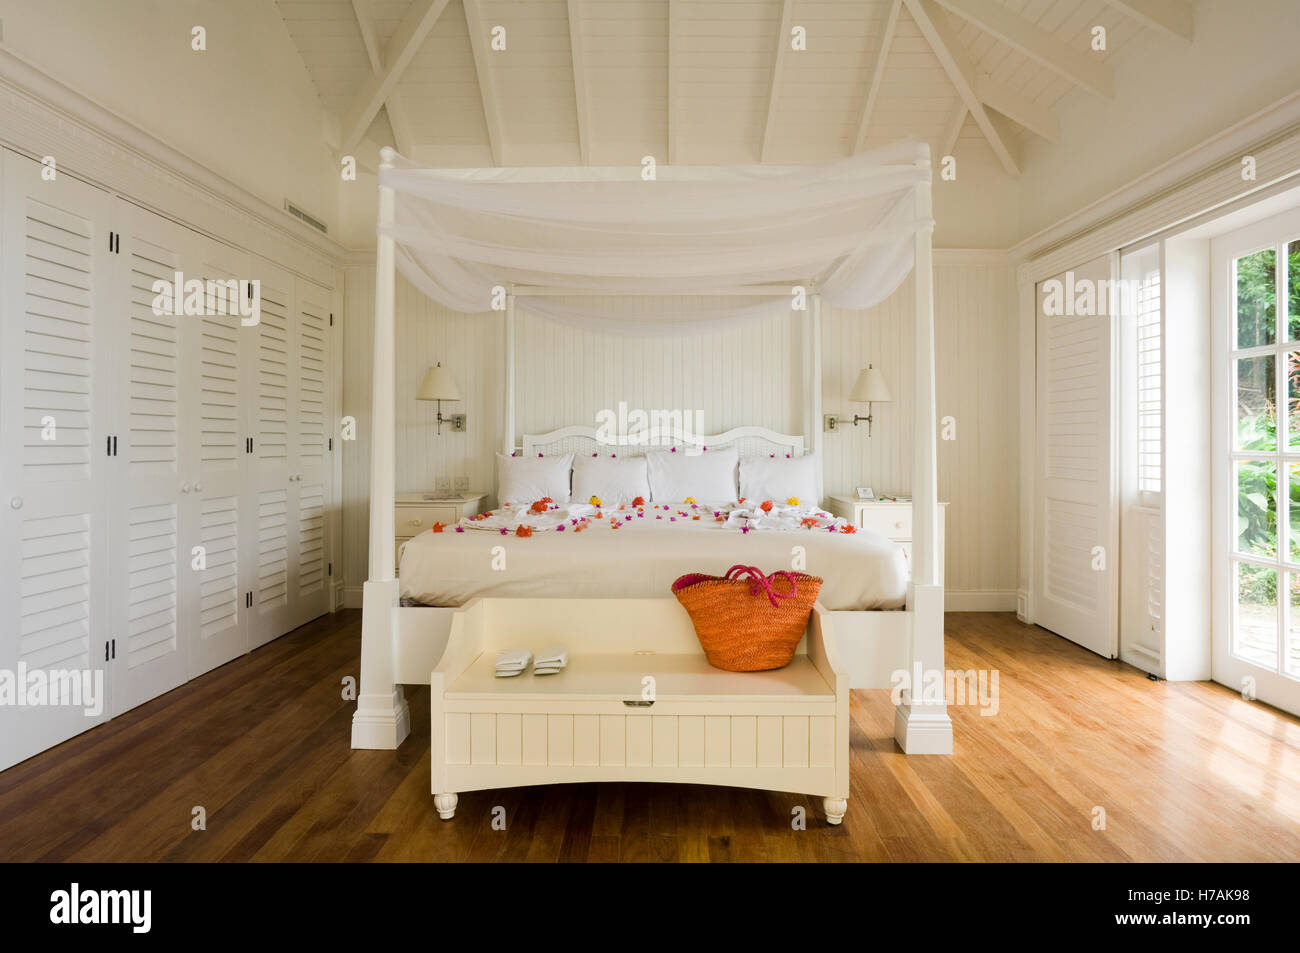 White four postered bed scattered with flower petals in St Lucia home, Caribbean - Stock Image